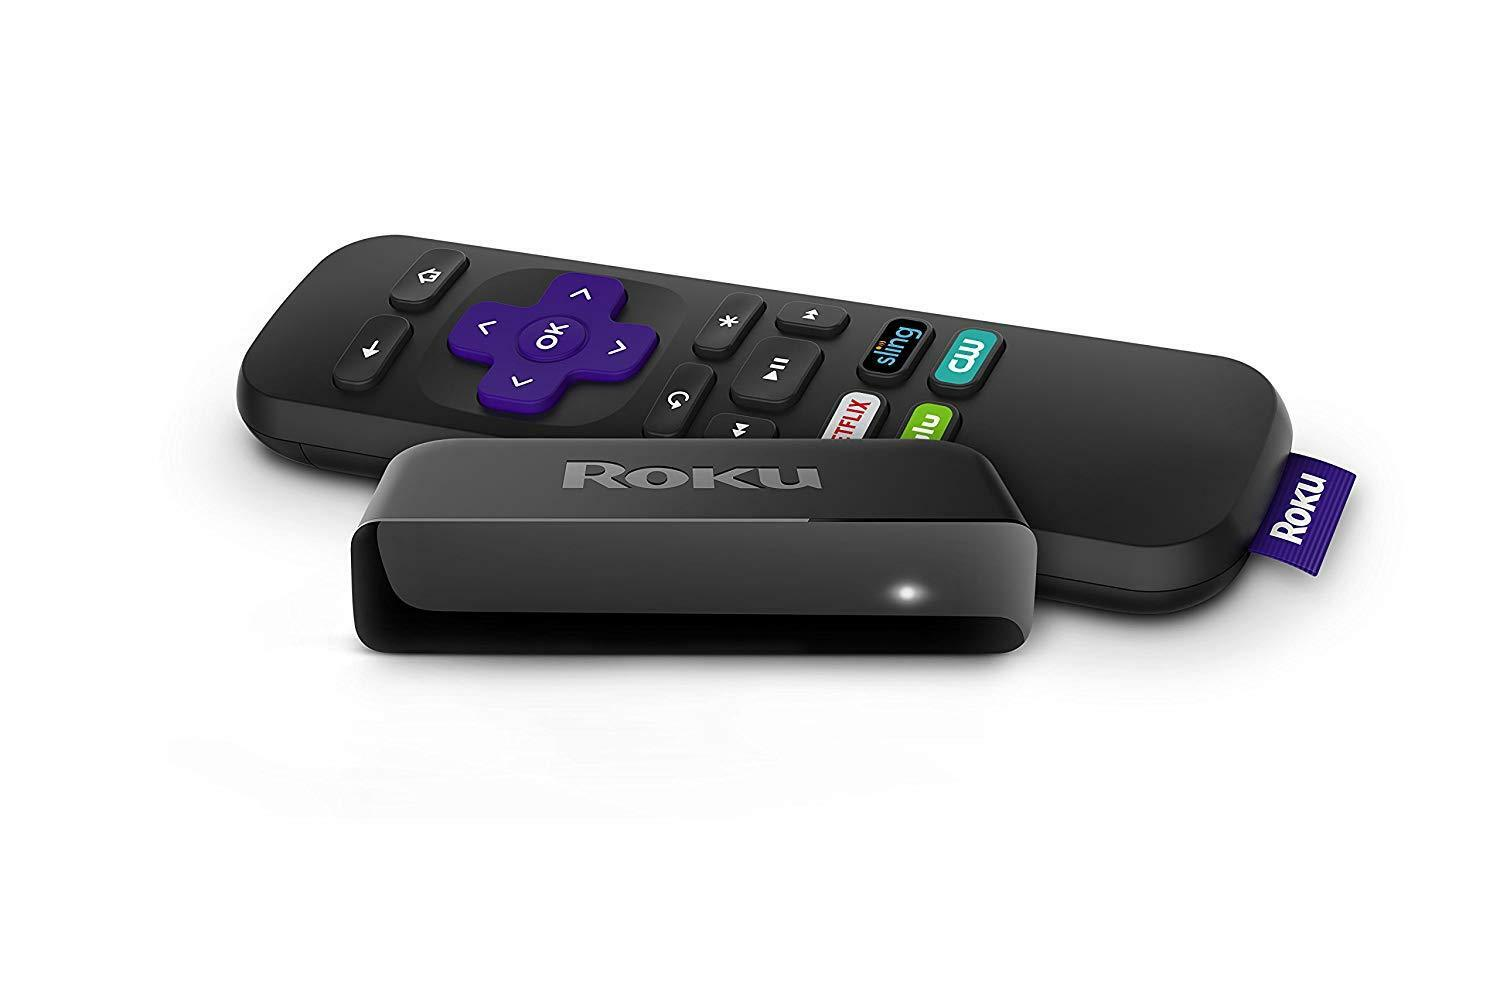 Roku Express | HD Streaming Media Player, incl. HDMI cable (2019/latest model) Consumer Electronics